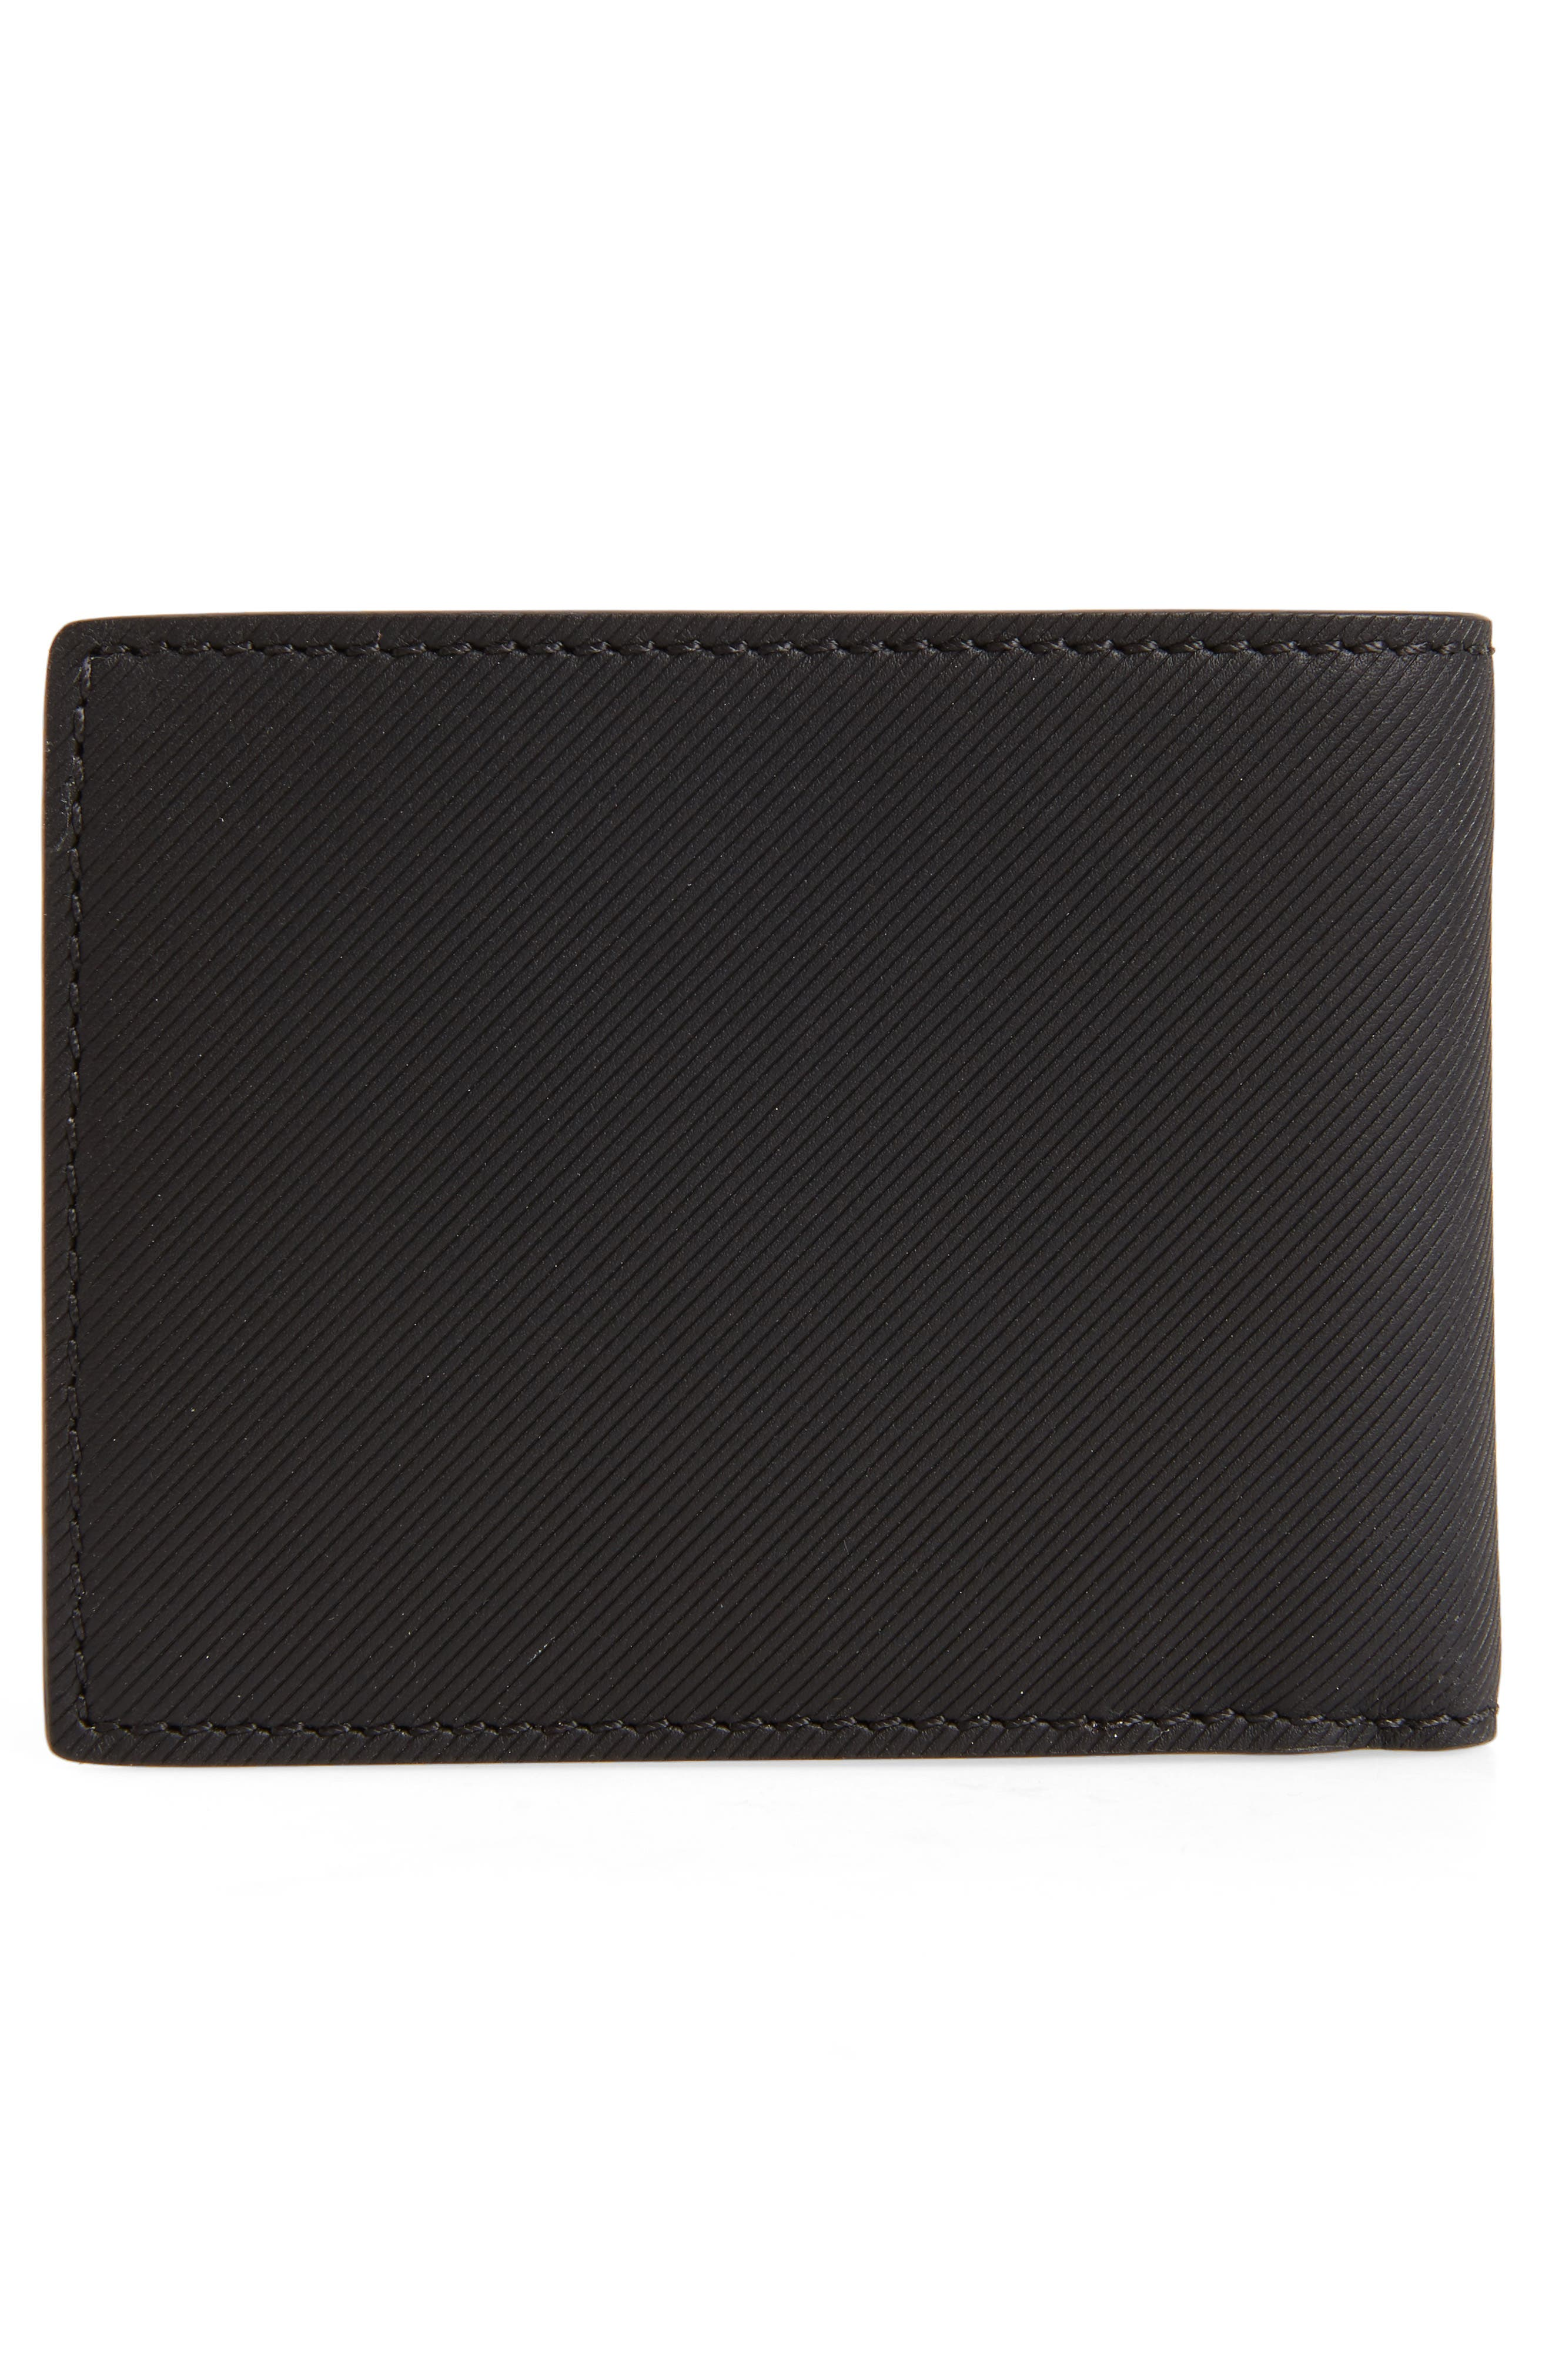 Alternate Image 3  - Burberry Leather Bifold Wallet